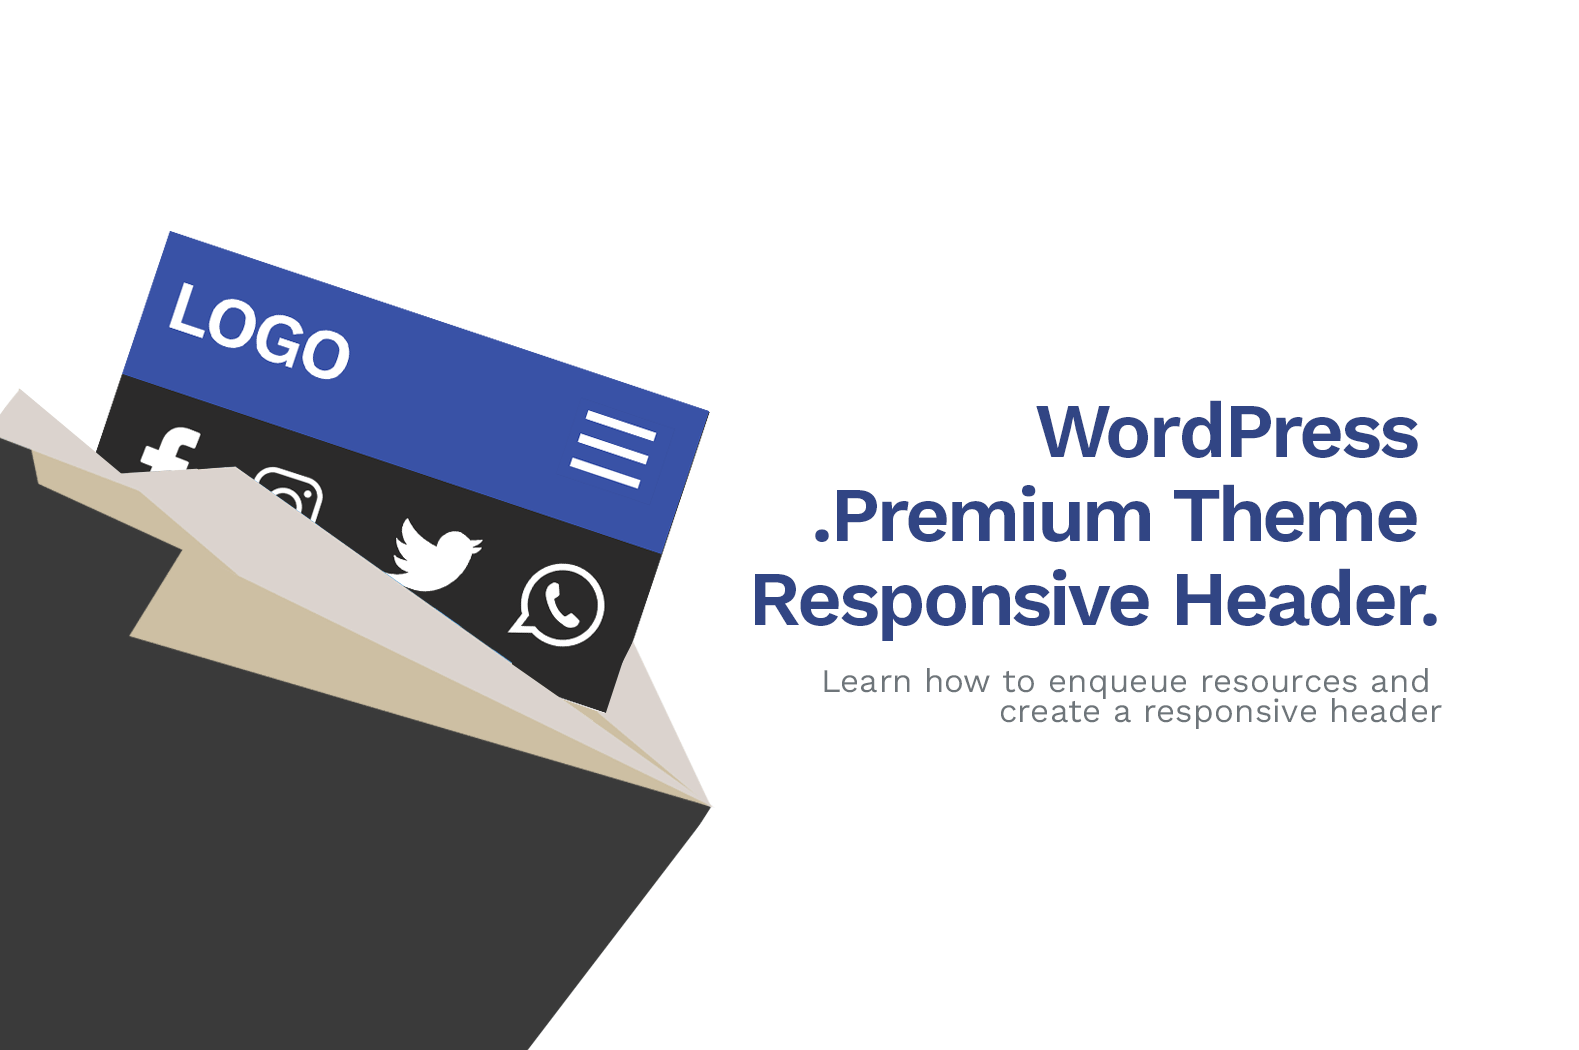 How To Make Premium WordPress Theme Header (Tutorial)